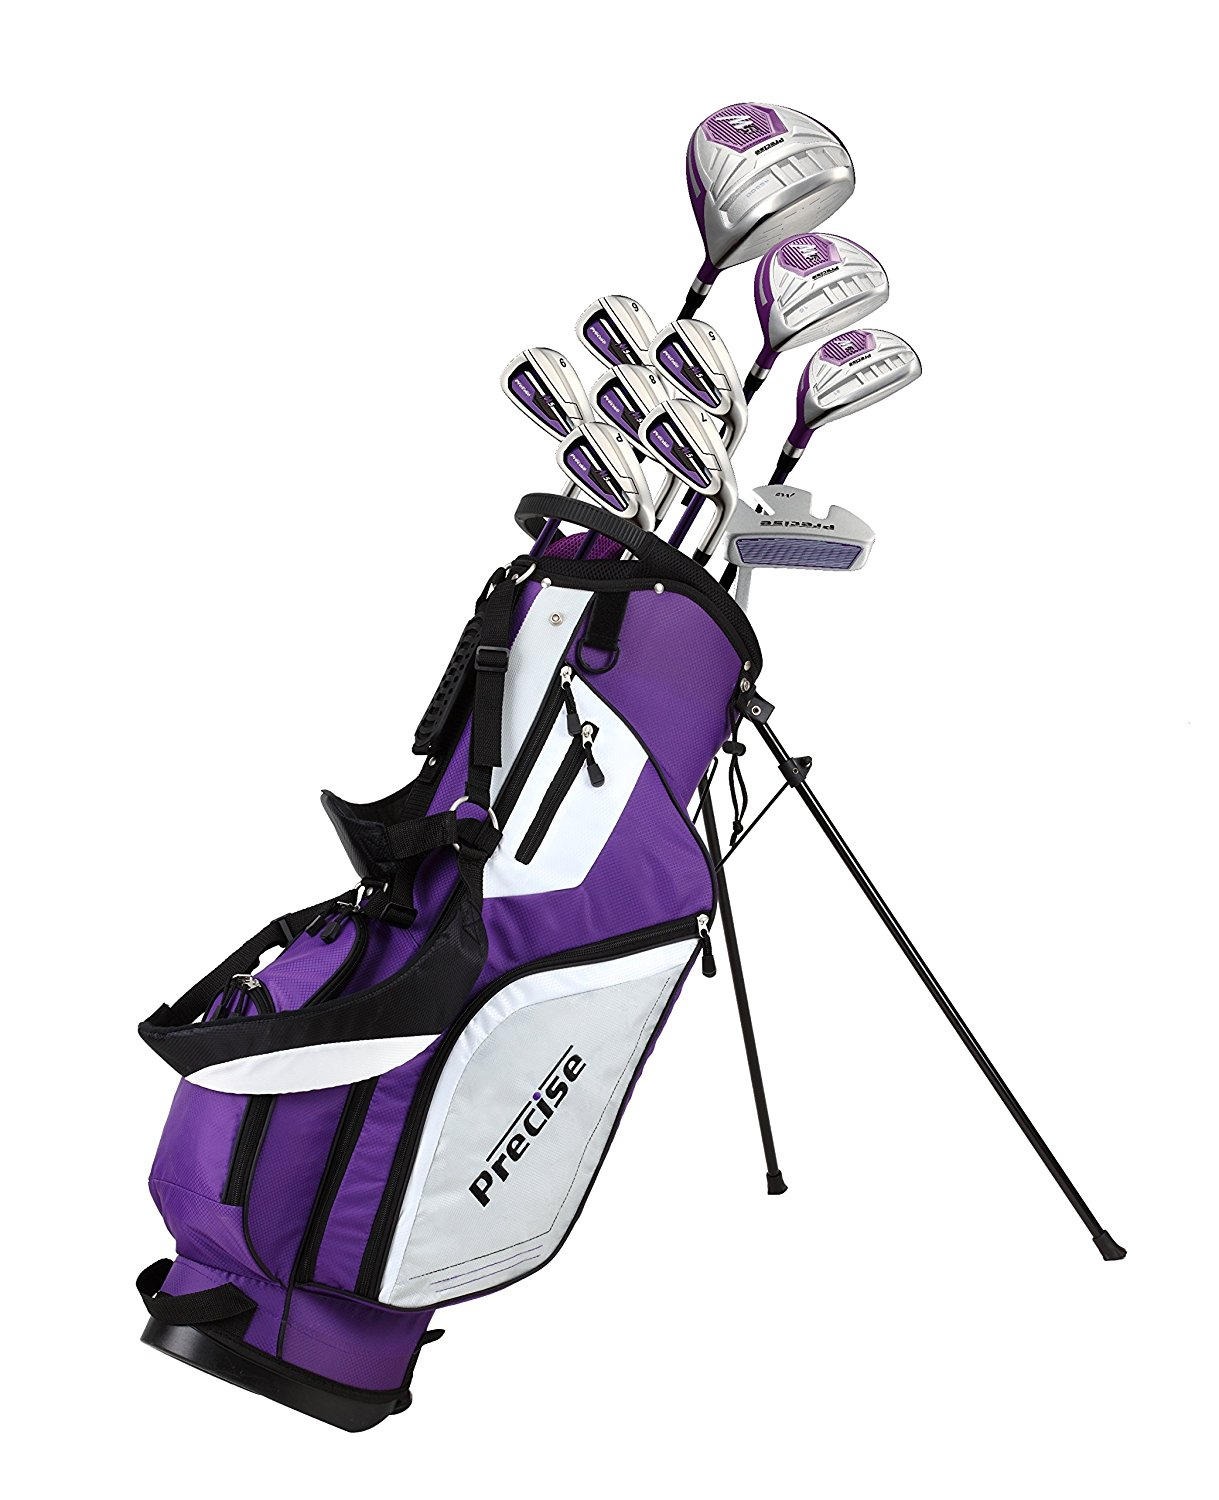 Precise M5 Ladies Womens Complete Right Handed Golf Clubs Set Includes Titanium Driver, S.S. Fairway, S.S. Hybrid, S.S. 5-PW Irons, Putter, Stand Bag, 3 H/C's Purple